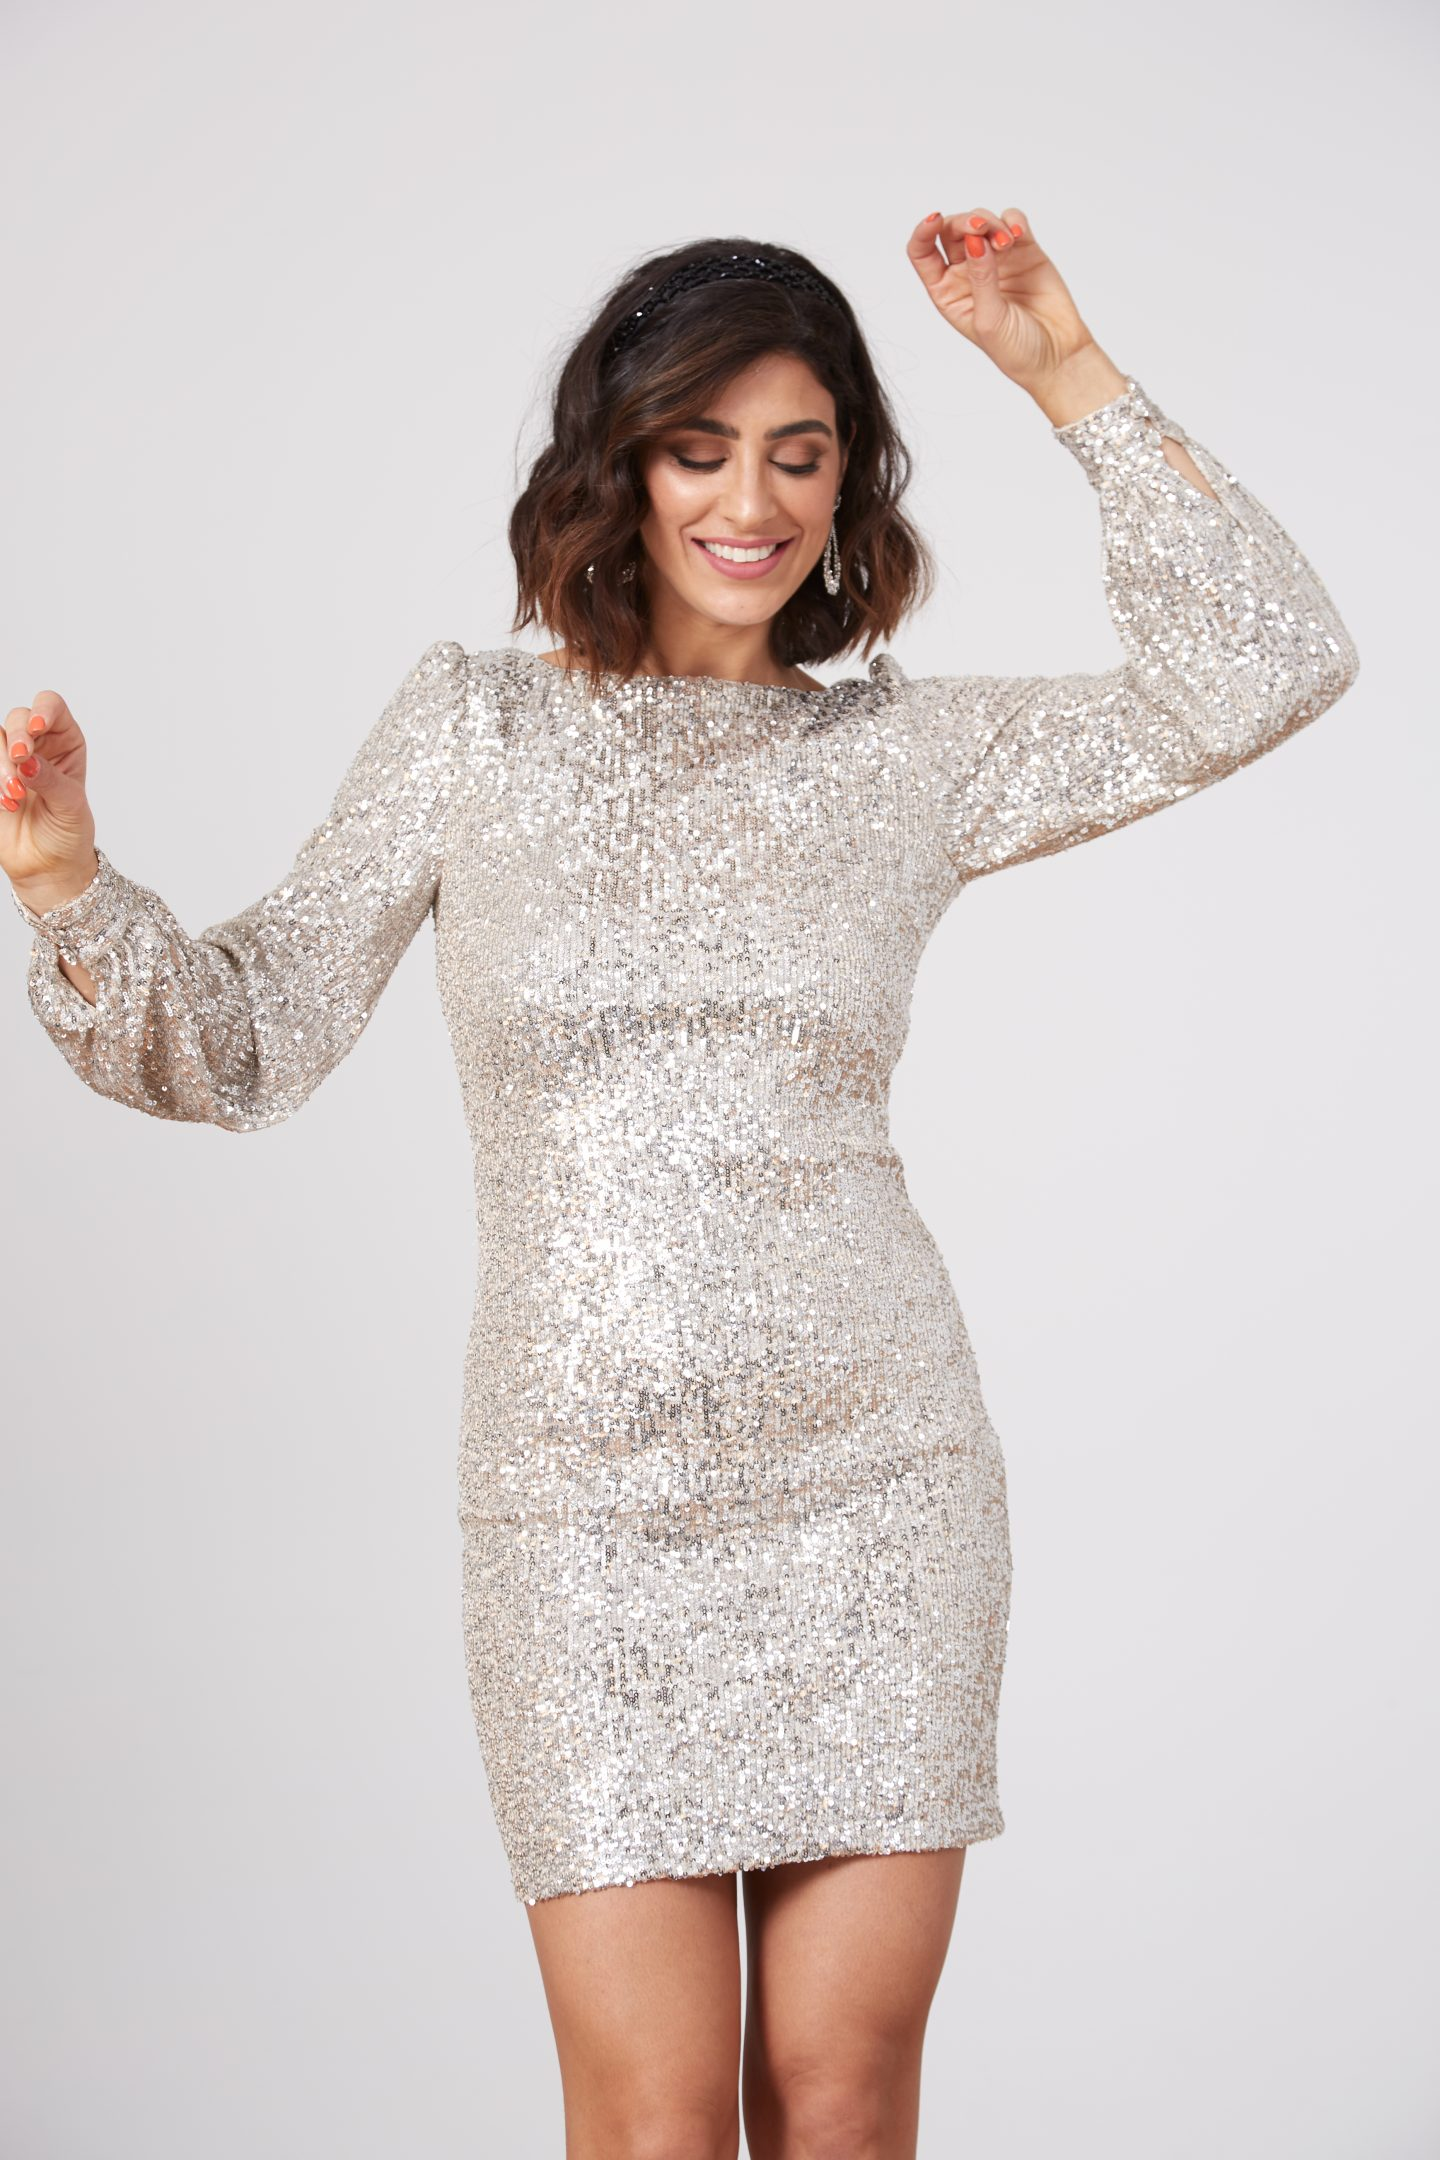 Lisa Homsy wearing a sequined silver dress perfect for New Year's Eve